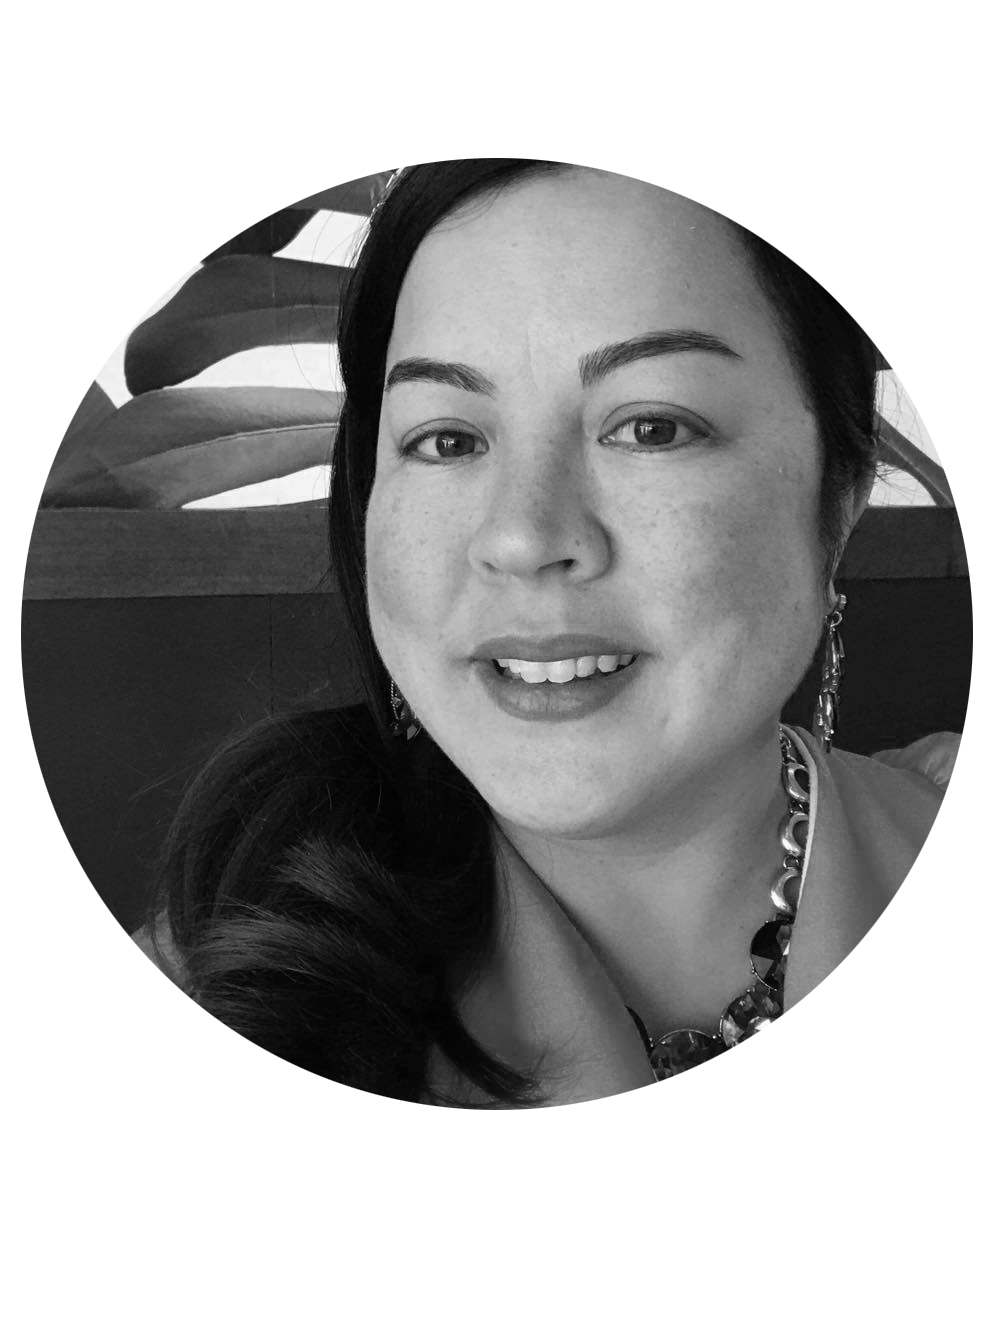 Rachel Lee - is owner and operator of Citizen, a new TIki Bar and restaurant in the Cheshire Village Business District in the Creston neighborhood and she is a long term neighborhood activist, resident, and volunteer in Grand Rapids neighborhoods.